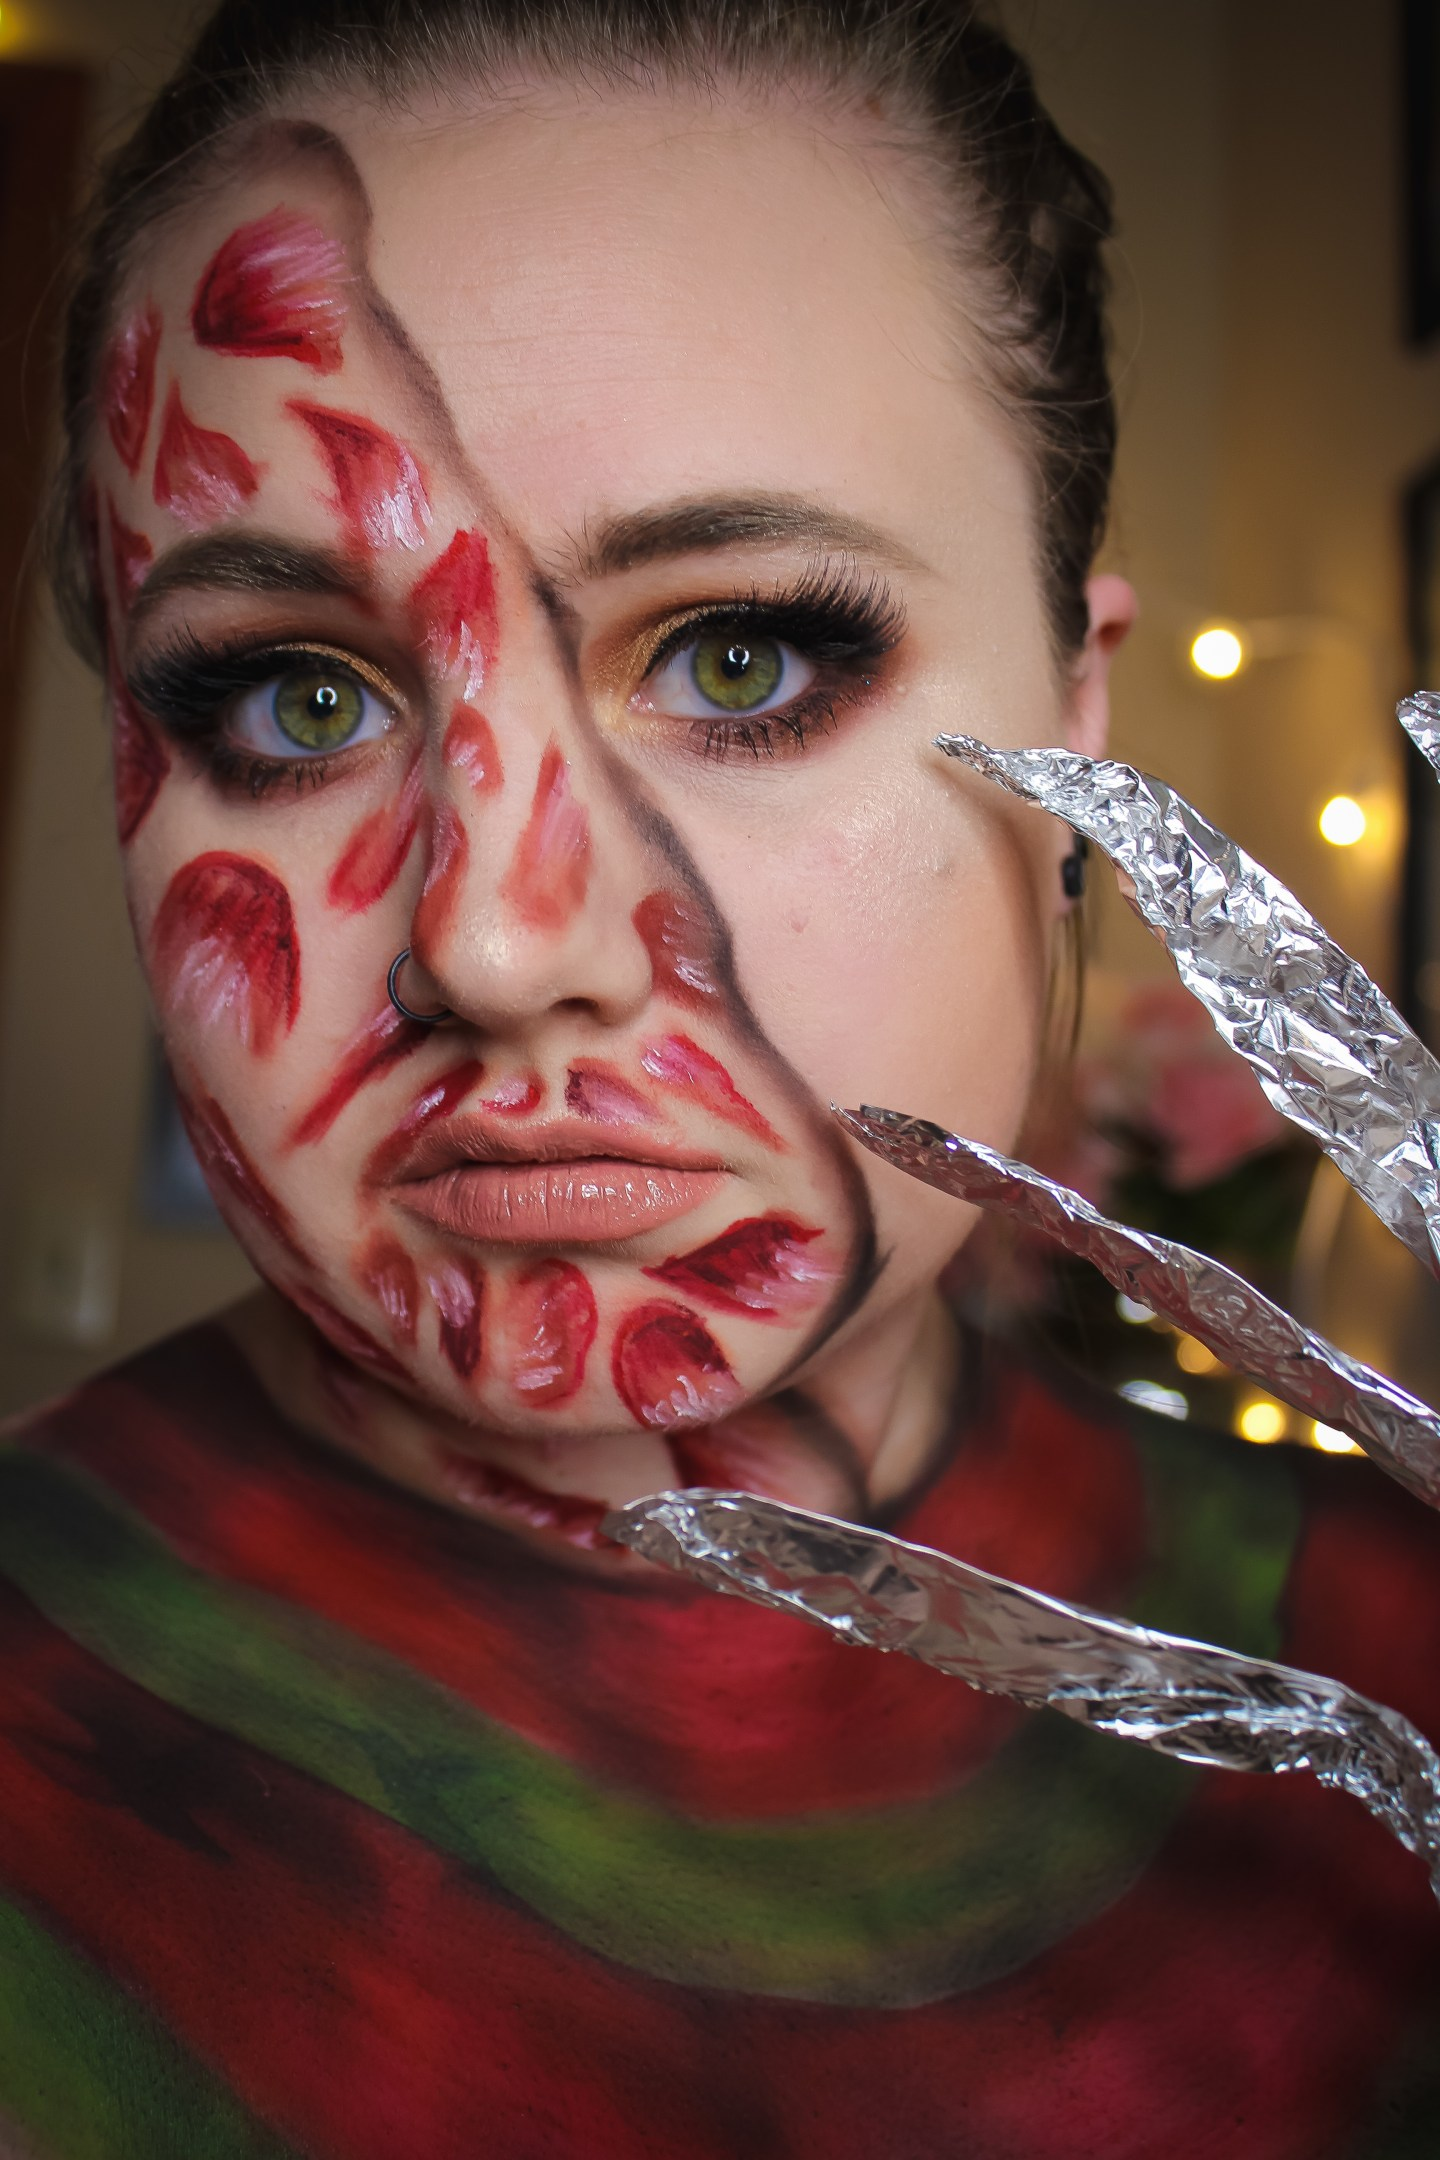 Why are you Screamin'? Freddy Krueger from A Nightmare on Elm Street Makeup Look 6